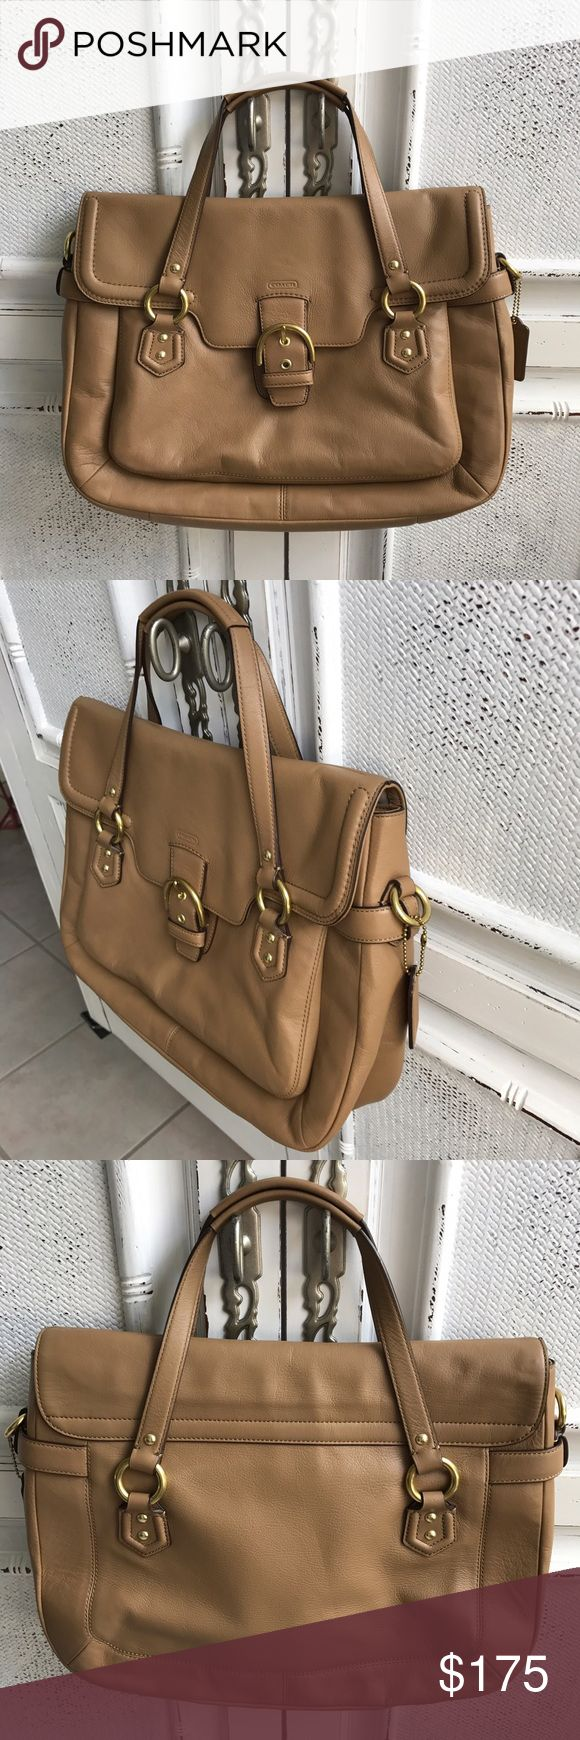 """❤COACH CAMPBELL LEATHER EVA FLAP SATCHEL❤ Made in USA, gorgeous smooth camel leather. Double leather handle 3"""" drop, no shoulder strap. Leather inside zip, cell phone and multifunction pockets. Brand new, used once pen mark in inside zip pocket (shown in pict) you would never see this. Perfect condition. STEAL😍 Coach Bags Satchels"""